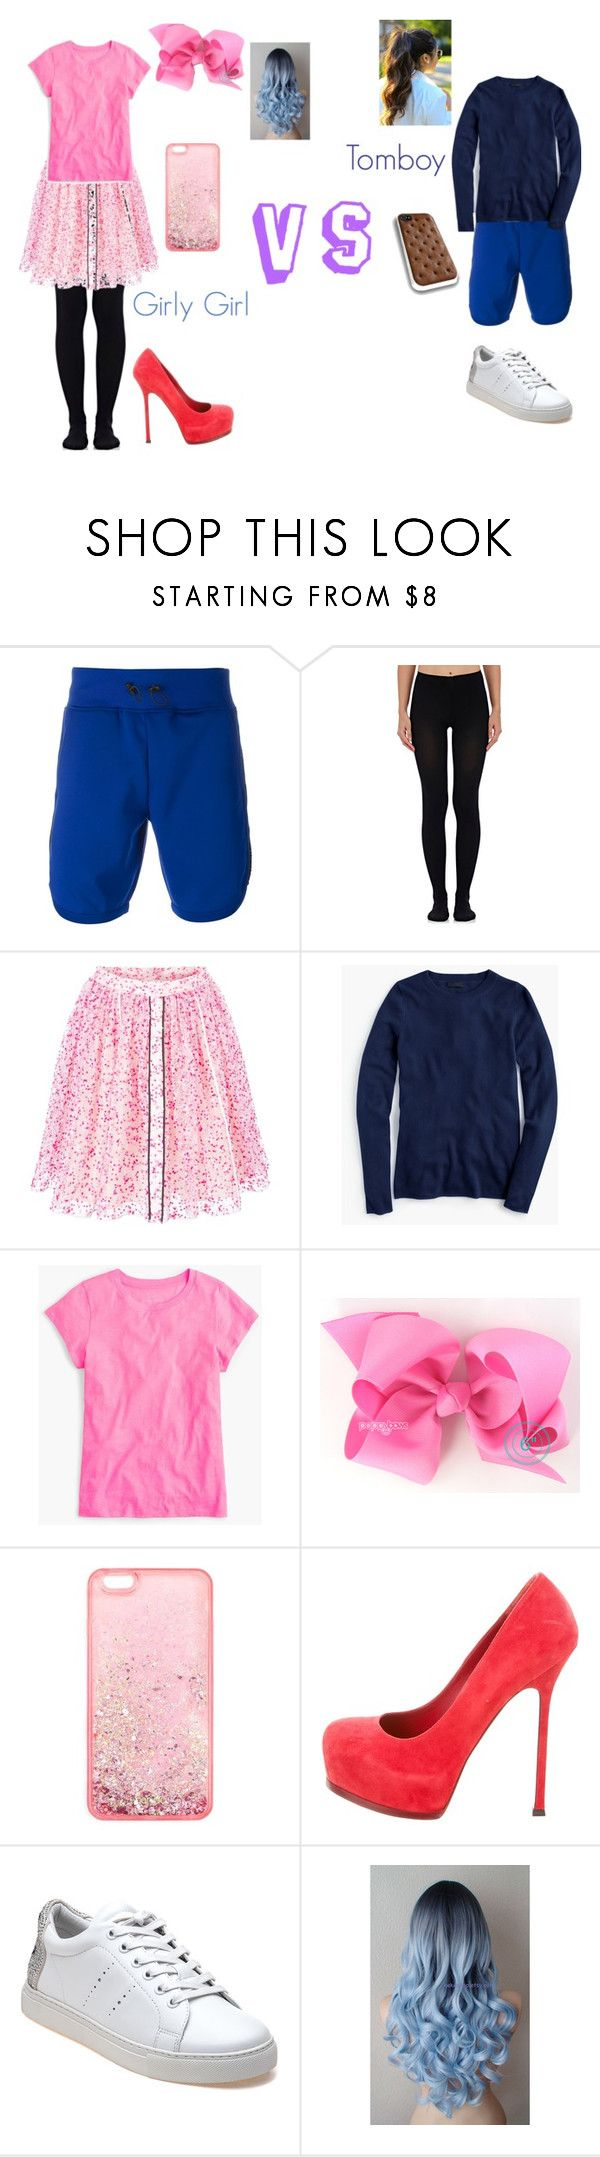 """Girly Girl vs. Tomboy: Interview outfits"" by sierra-ivy on Polyvore featuring Hydrogen, Wolford, Fendi, J.Crew, Miss Selfridge, Yves Saint Laurent, Lola Cruz, girly, tomboy and girlygirl"